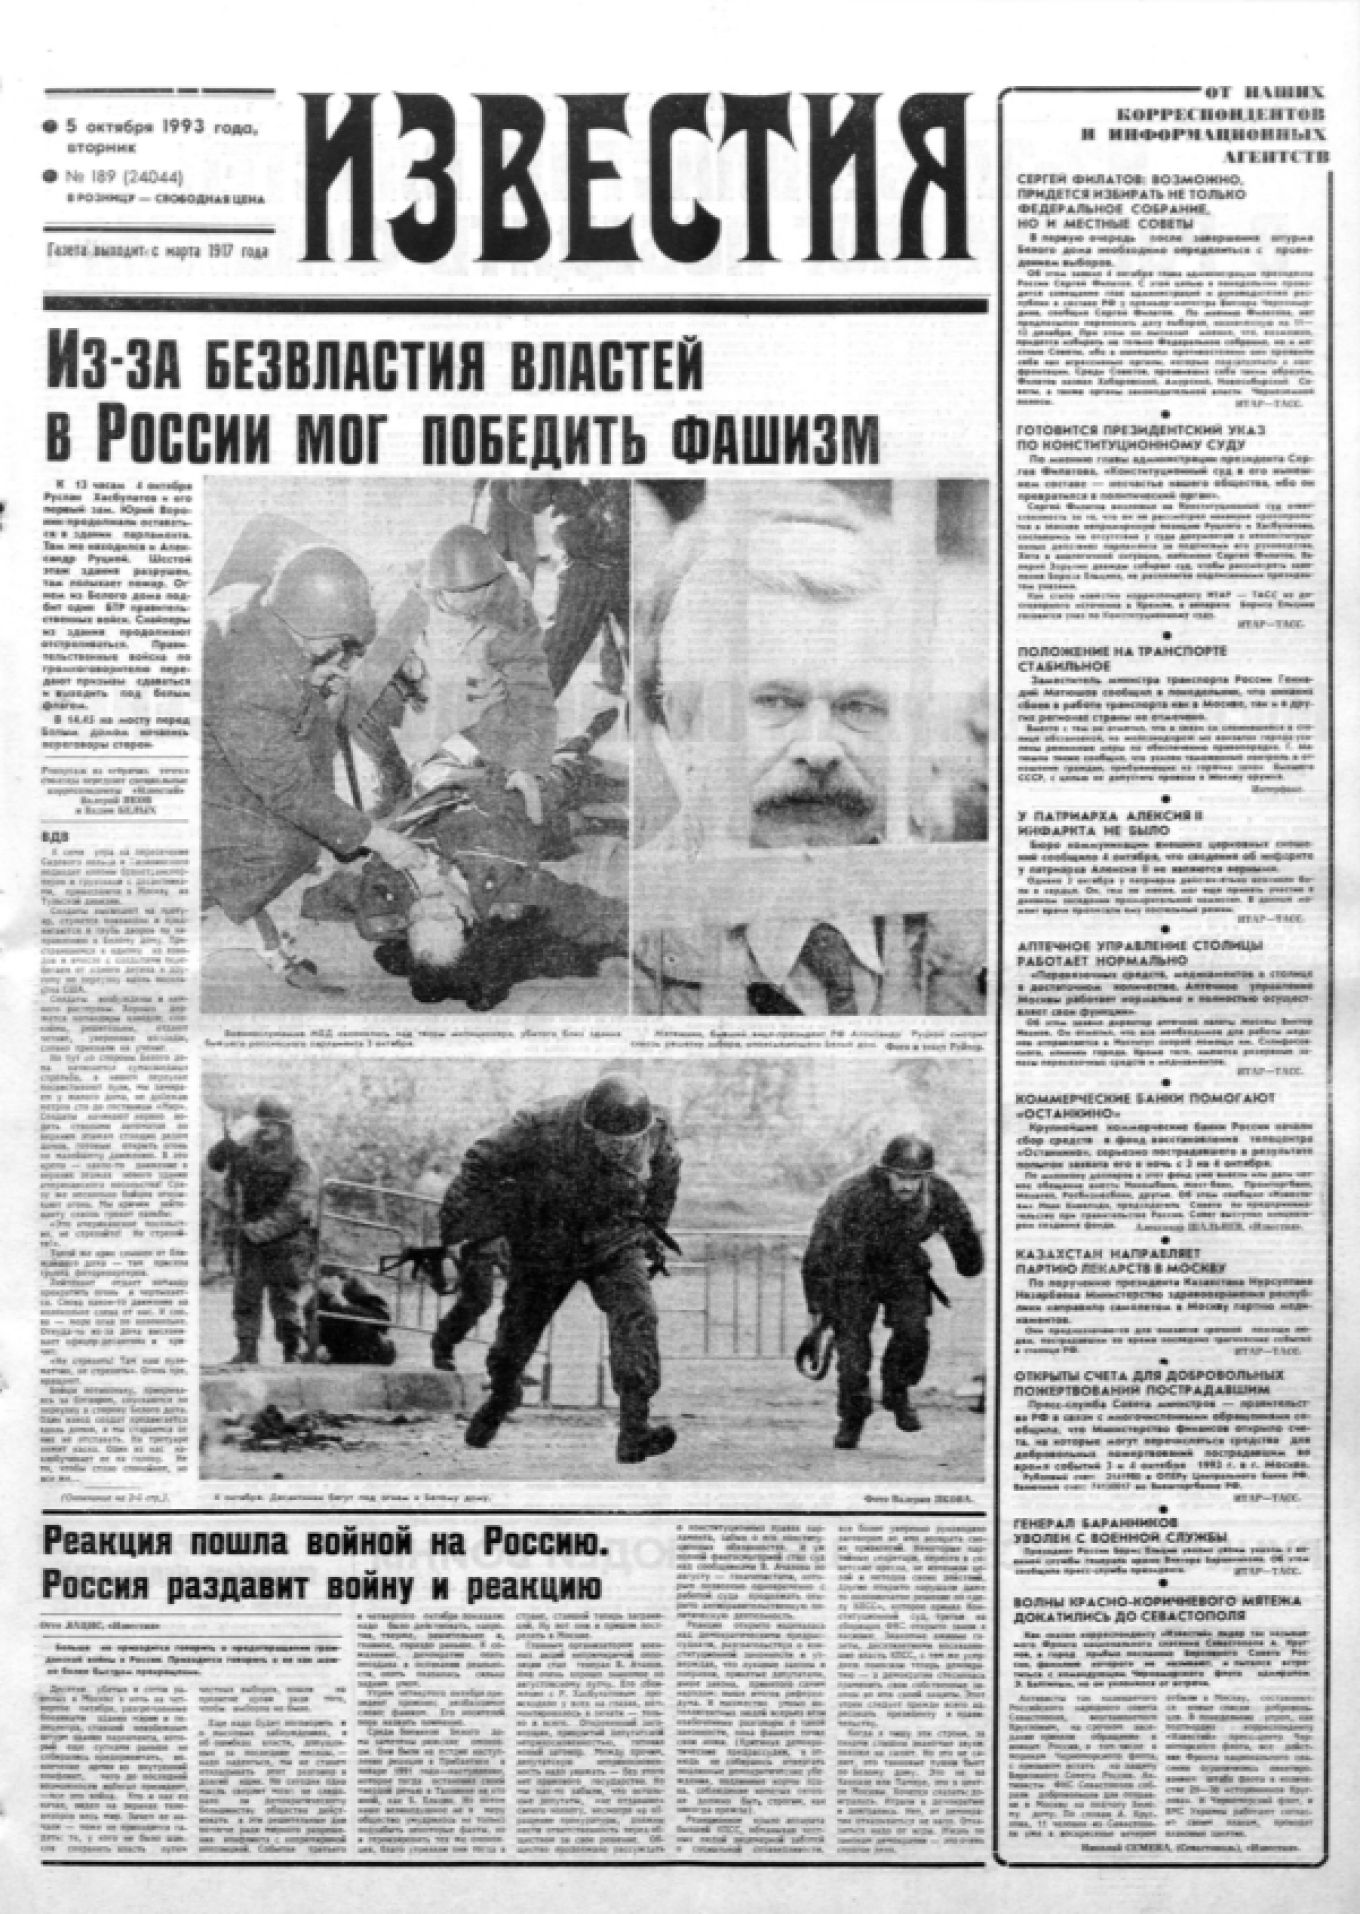 """Oct. 5, 1993. The aftermath of the deadly shelling of the Russian parliament. """"Due to the power vacuum, fascism could have won"""", says the headline.  Izvestia Archive"""